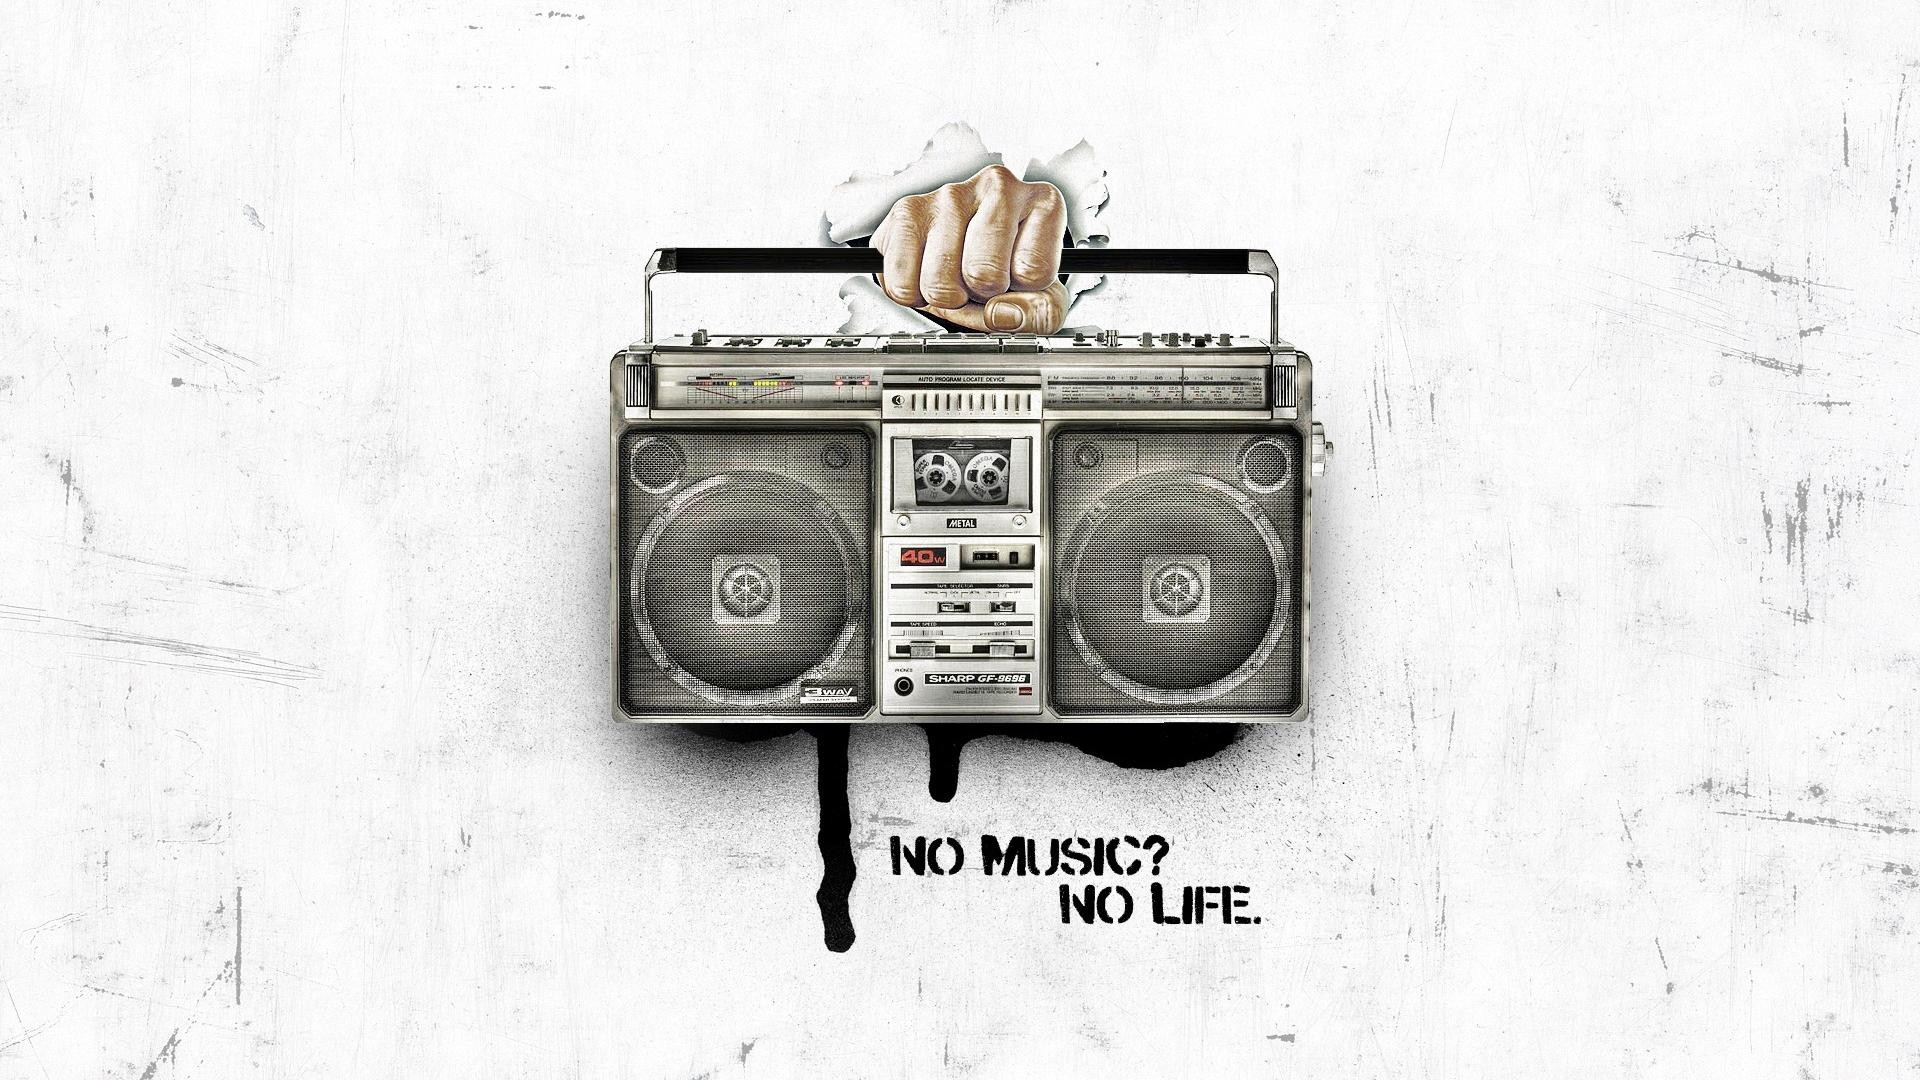 General 1920x1080 music hands life white artwork tape recorder digital art typography simple background white background audio boom box